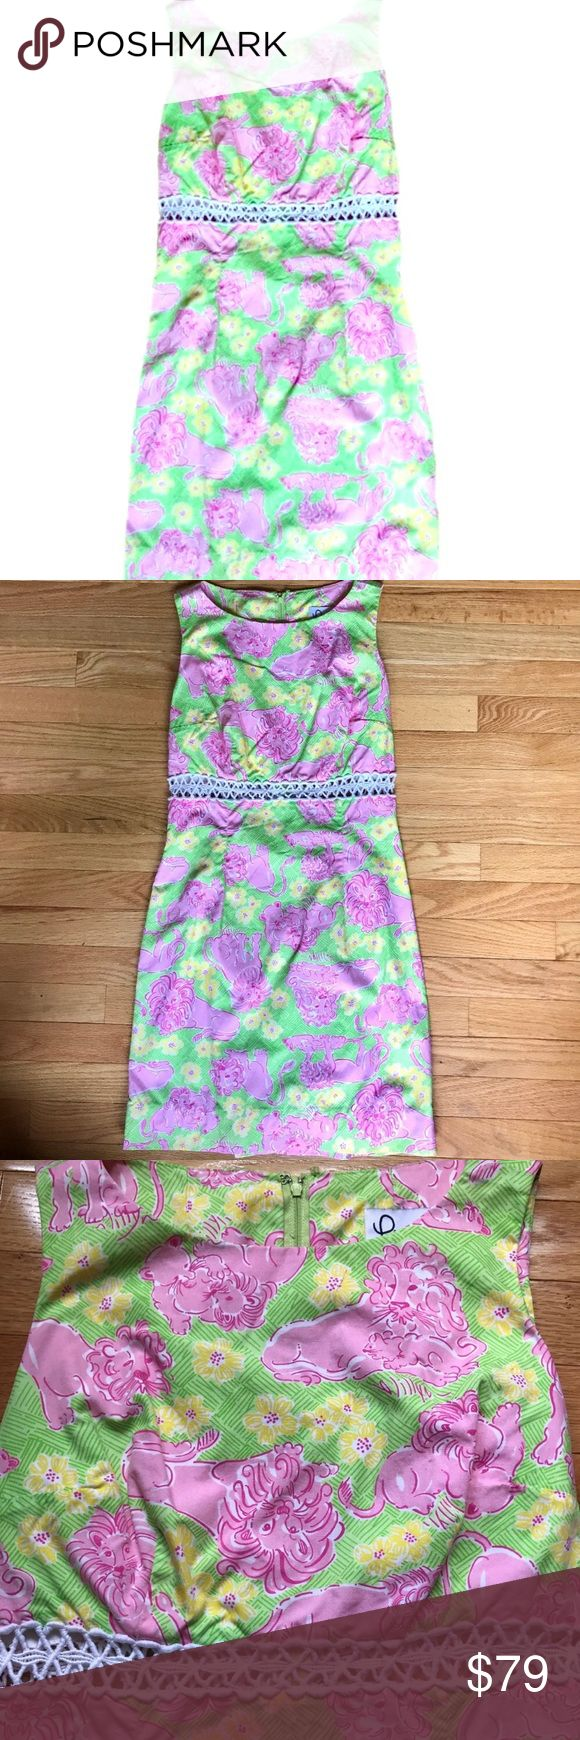 Lilly Pulitzer Green and Pink Lion Shift Dress 2 Adorable Lilly Pulitzer Lounging Lions shift dress in pink and green features a lion-print pattern. A must have piece for your closet perfect for church, brunches, bridal showers, sorority functions, and so much more! Size 2.***Special SUMMER SALE- 20% discount when bundled with any other dress, tank top, skirt, or shorts! Add it to a bundle and I will send you the offer! *** small hook on back came off but easily replaceable/not necessary to…